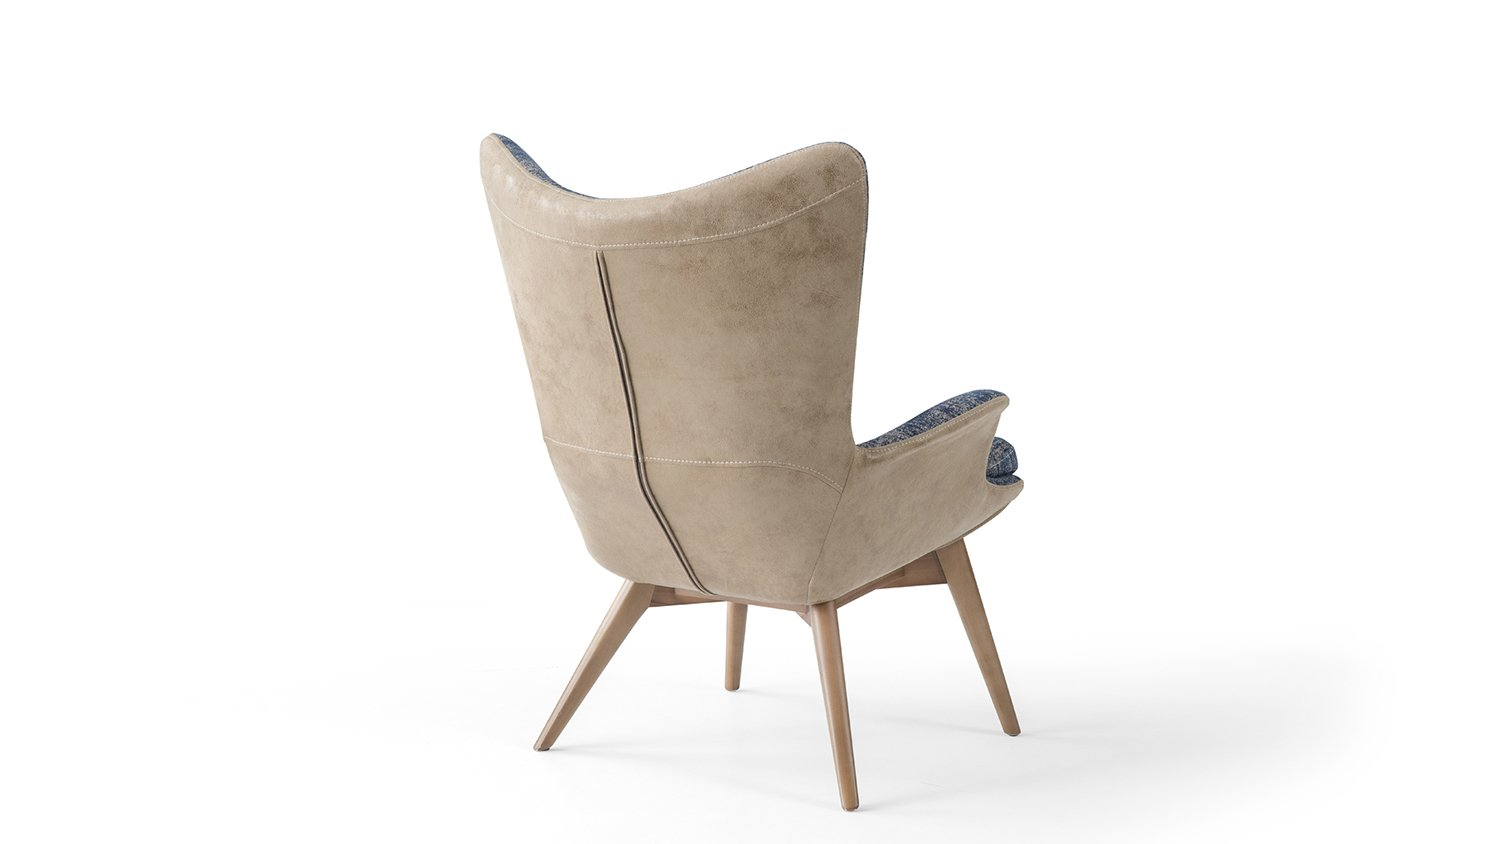 Armstrong - Fauteuil moderne au style rafiné